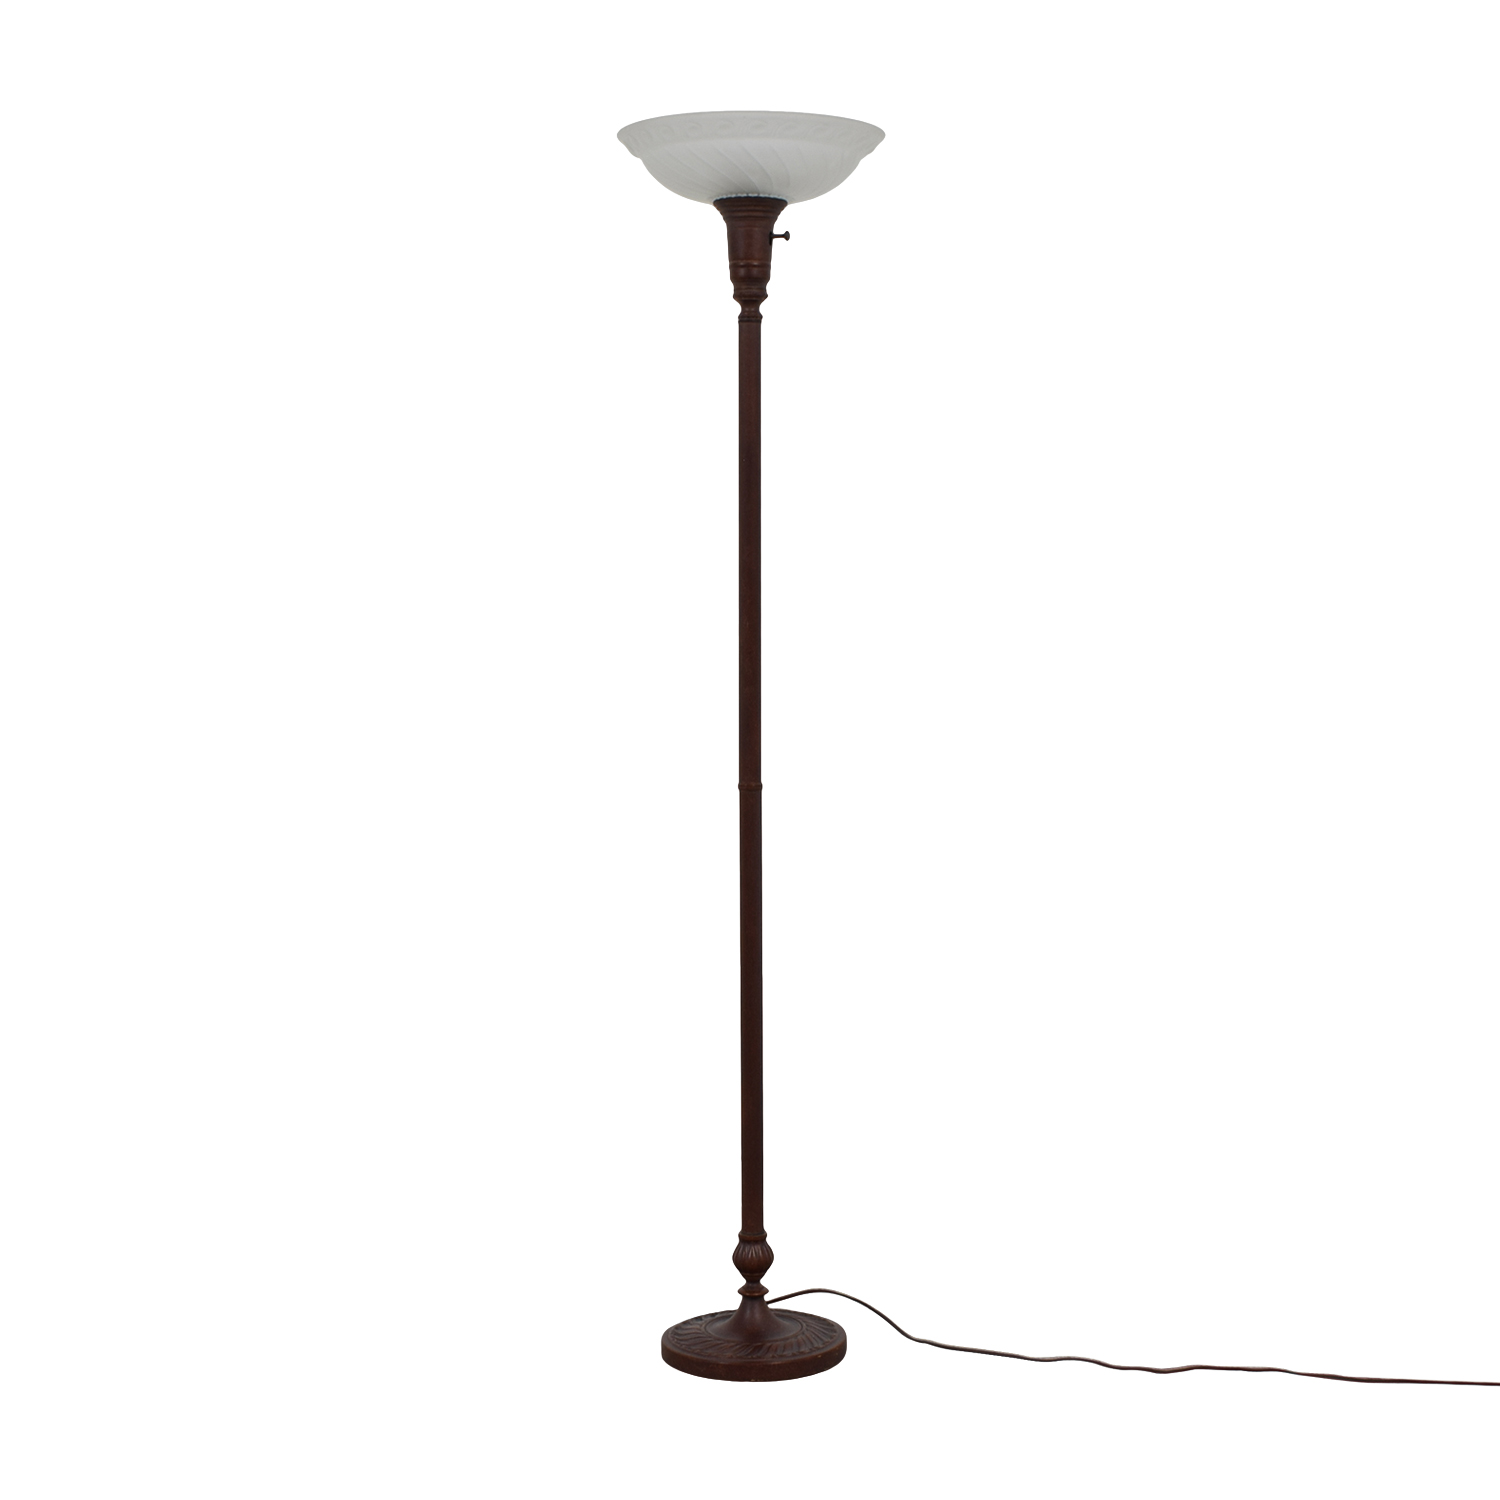 Art Deco Standing Floor Lamp on sale